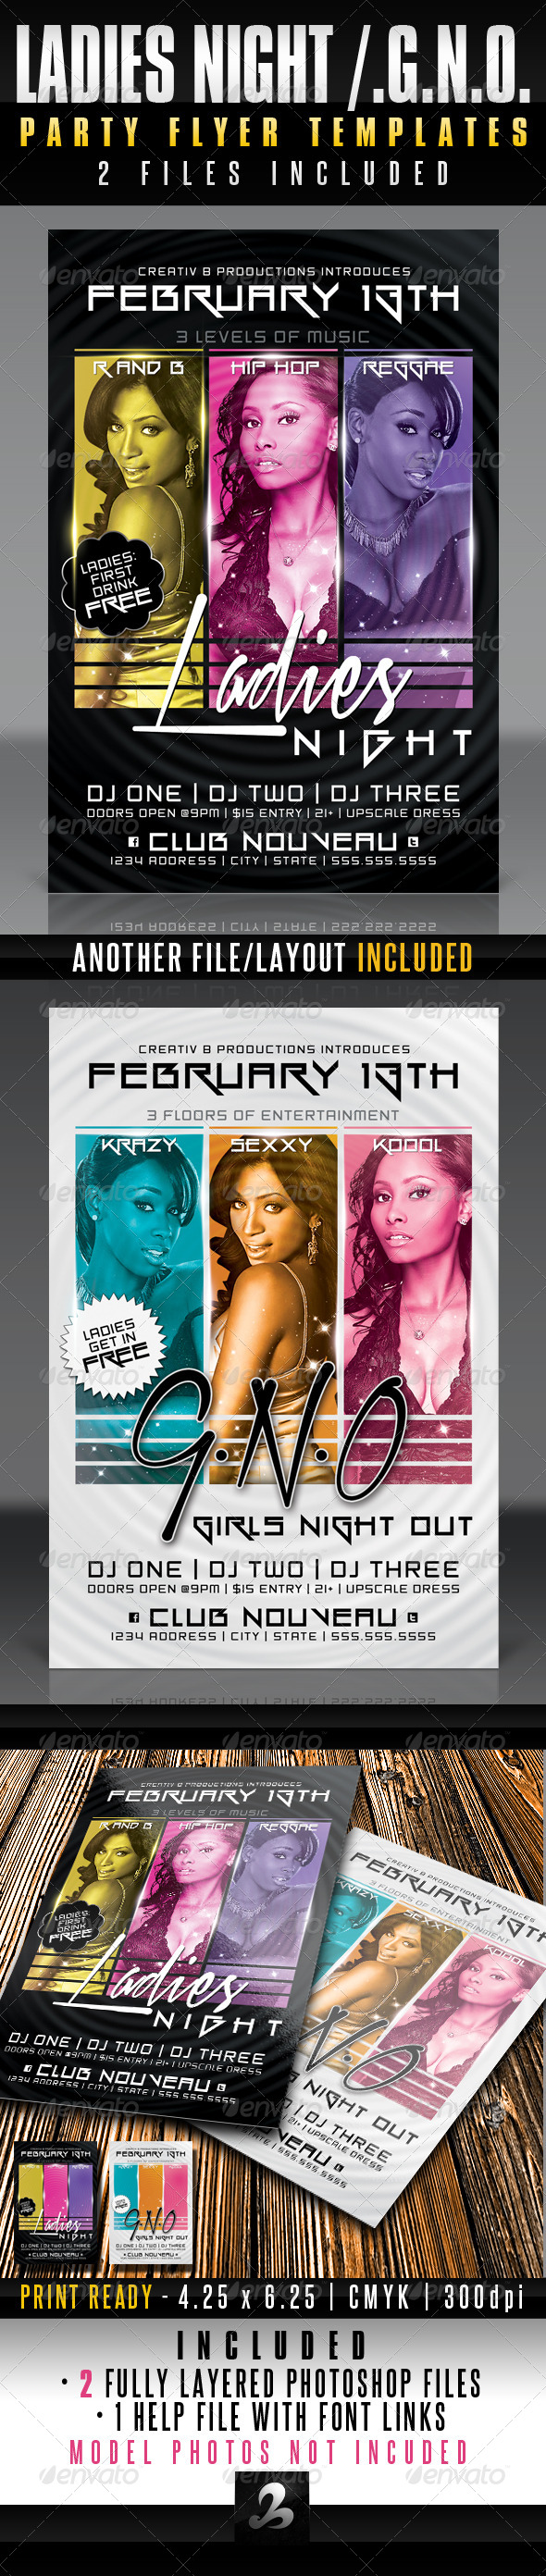 Ladies Night / GNO Party Flyer Templates - Events Flyers